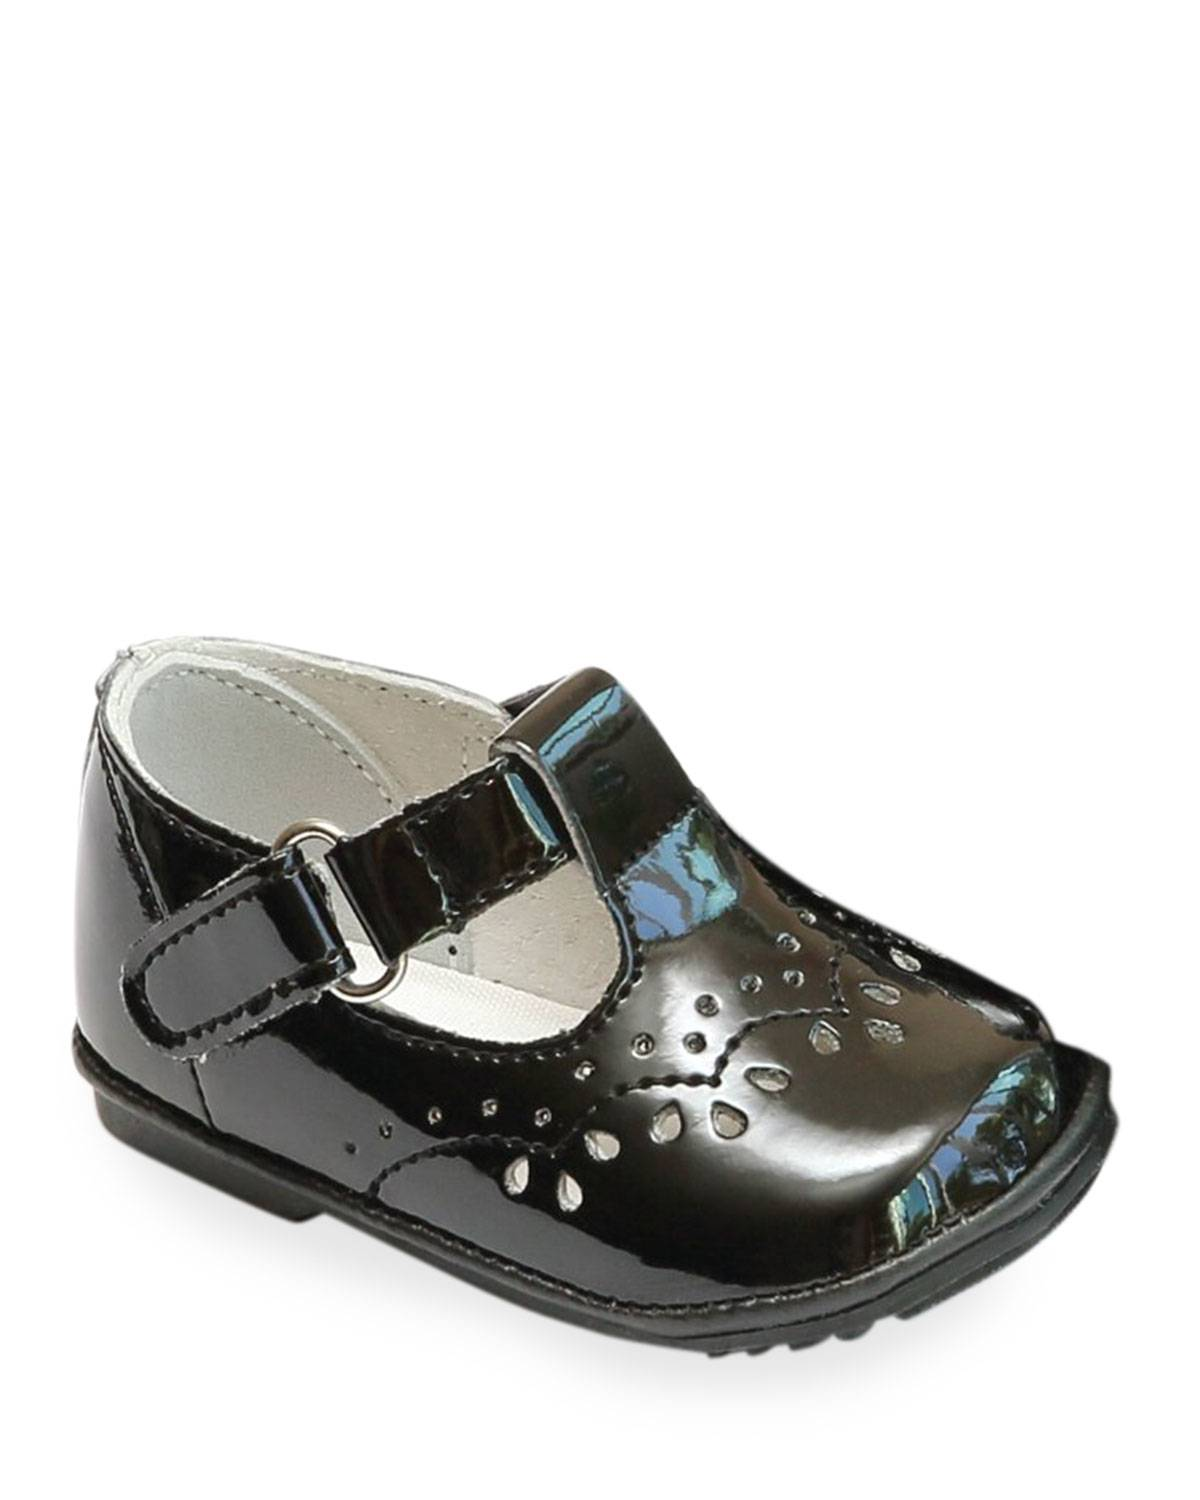 L'Amour Shoes Birdie Patent Leather T-Strap Brogue Mary Jane, Baby  - female - BLACK - Size: 7 Baby